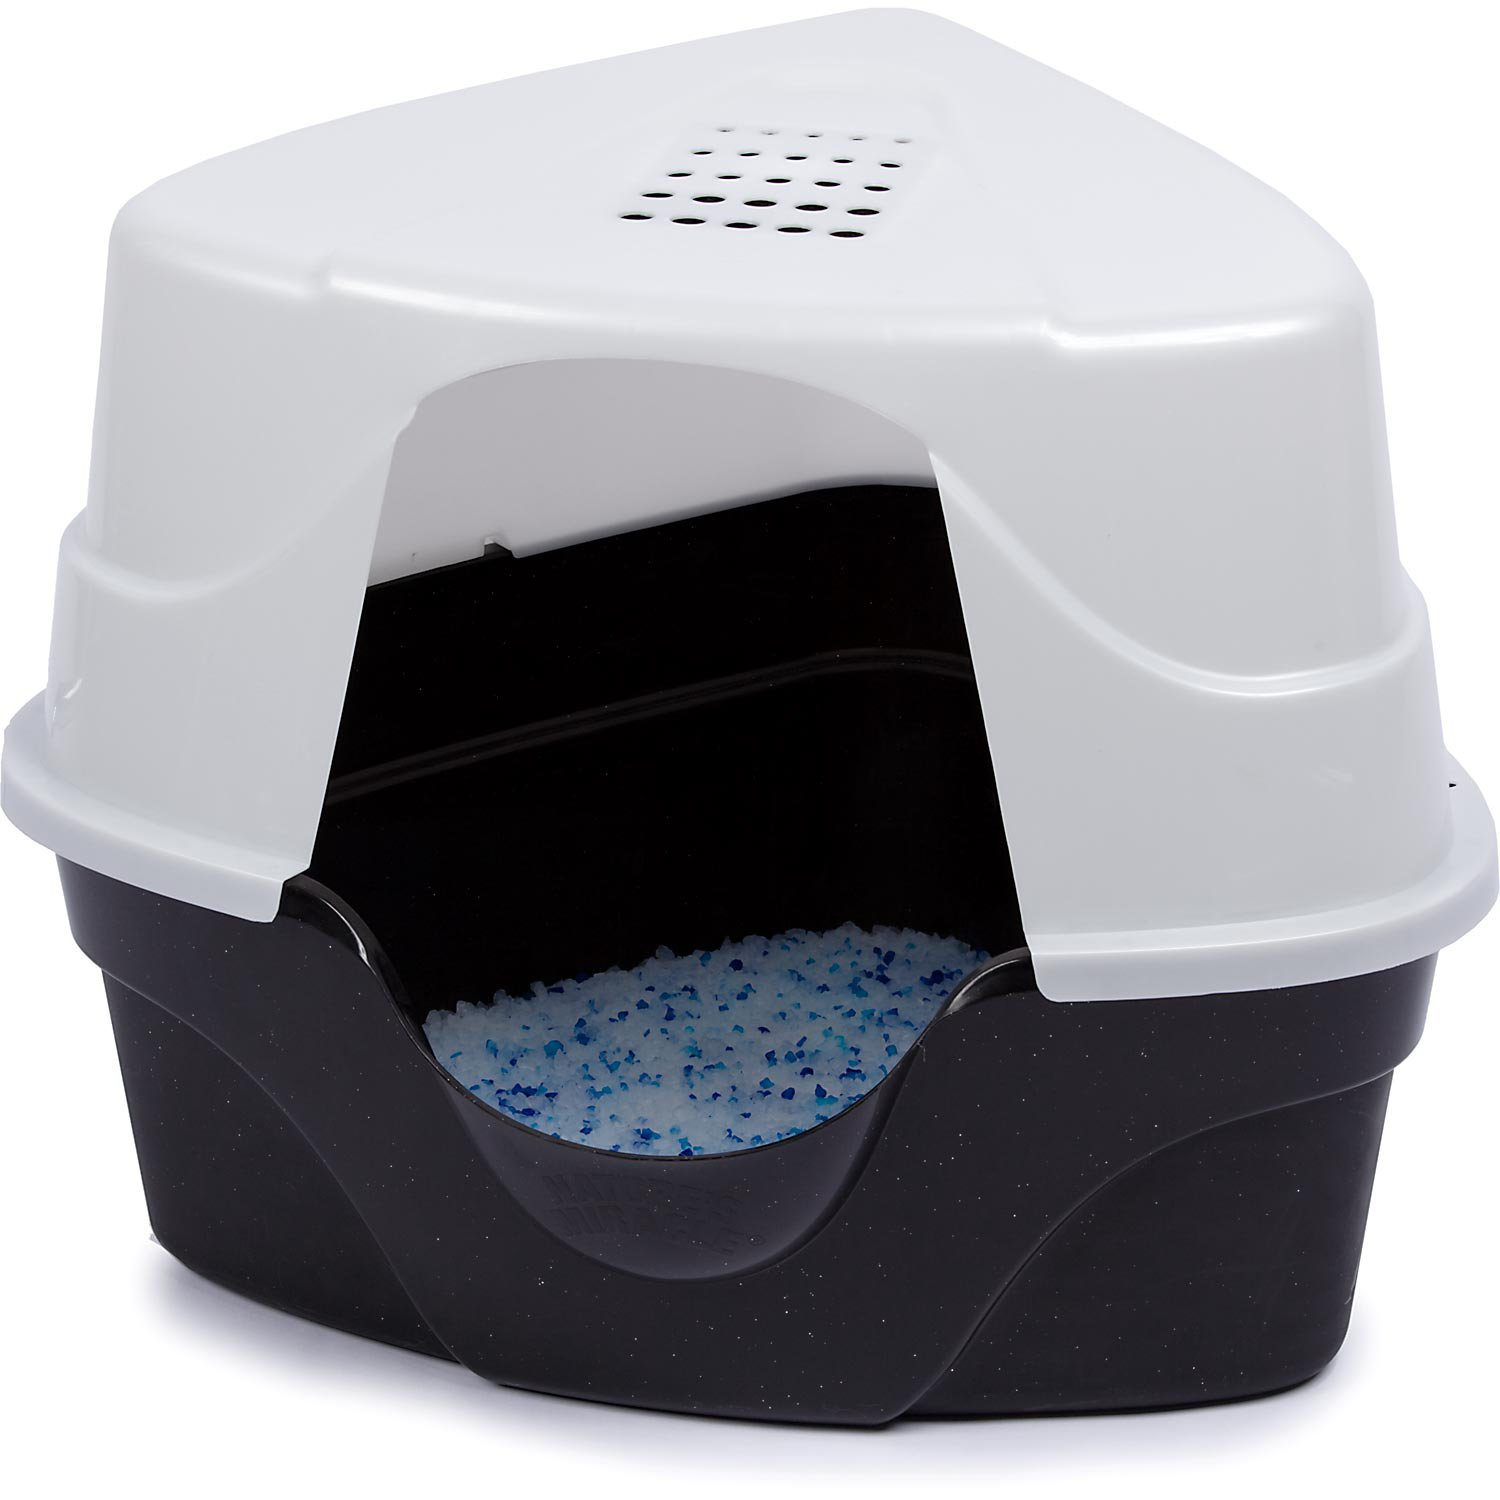 Best Hooded Cat Litter Box